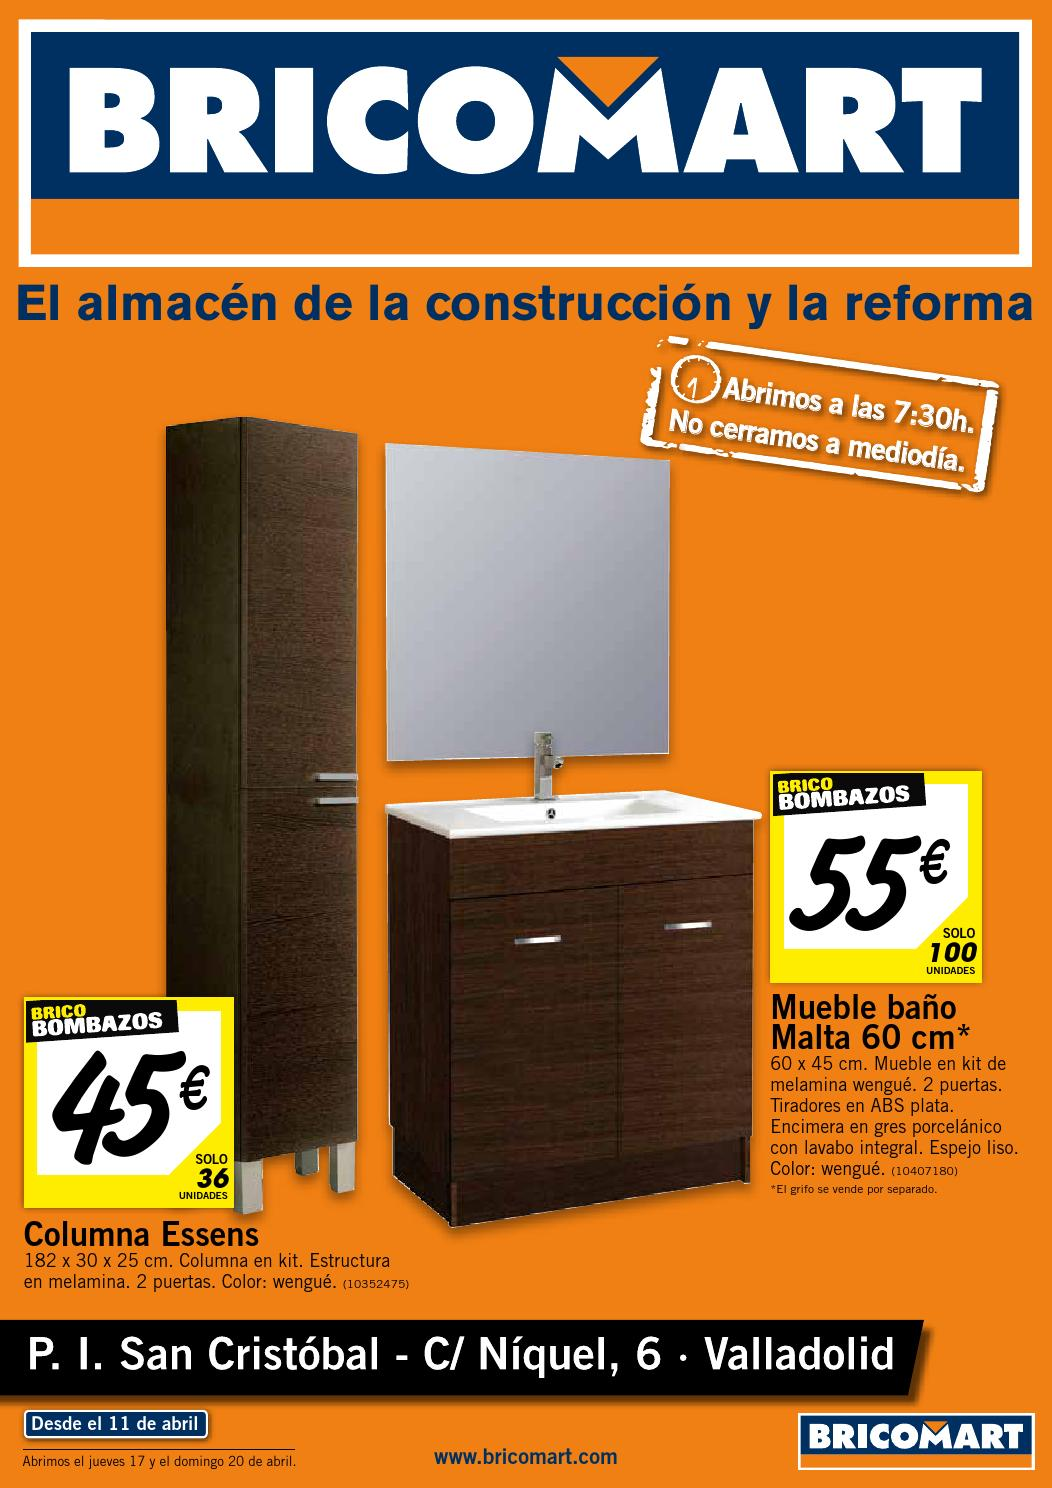 Bricomart folleto valladolid valladolid 07 04 2014 by losdescuentos issuu - Muebles lavabo bricomart ...